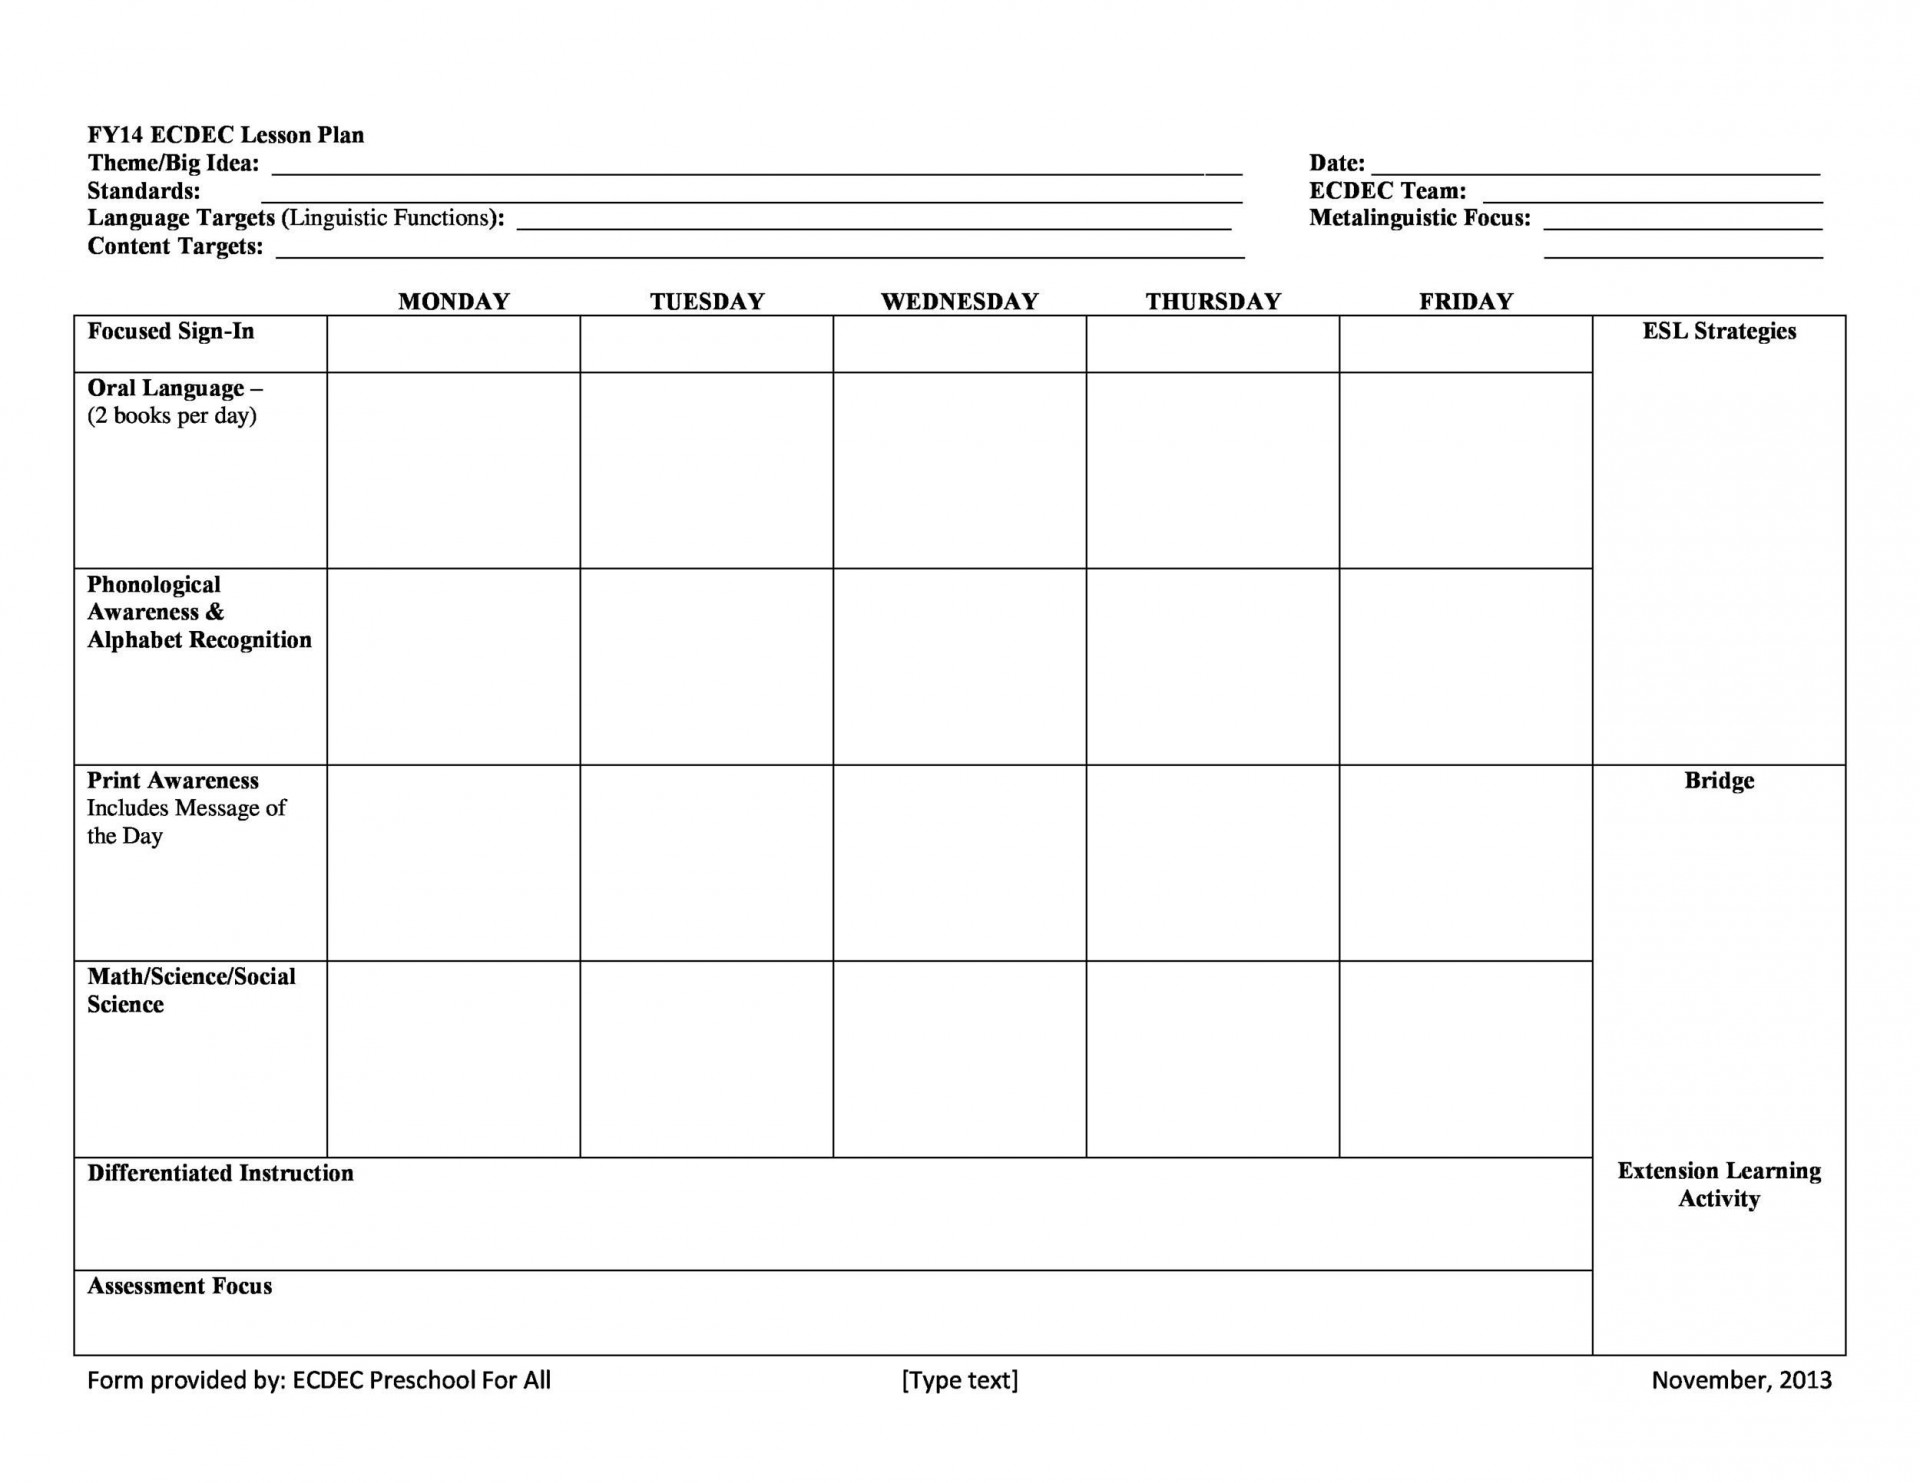 005 Stunning Preschool Lesson Plan Template High Def  Editable With Objective Pre-k Printable1920